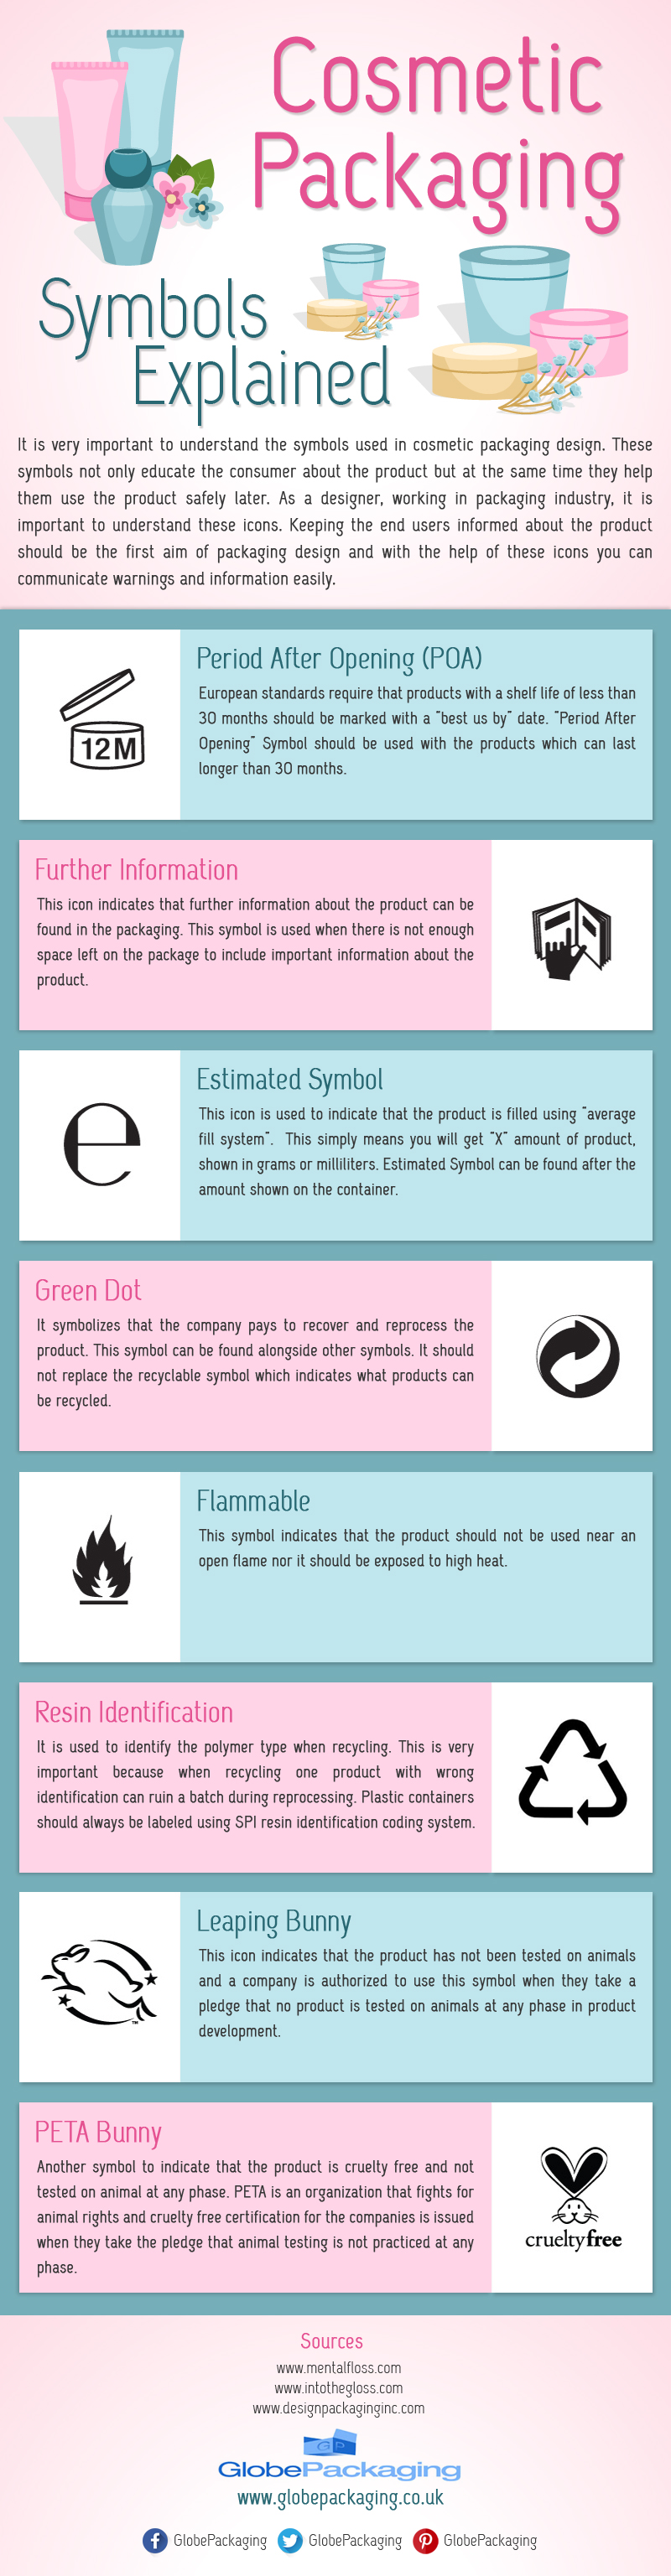 Cosmetic Packaging Symbols Explained [Infographic]